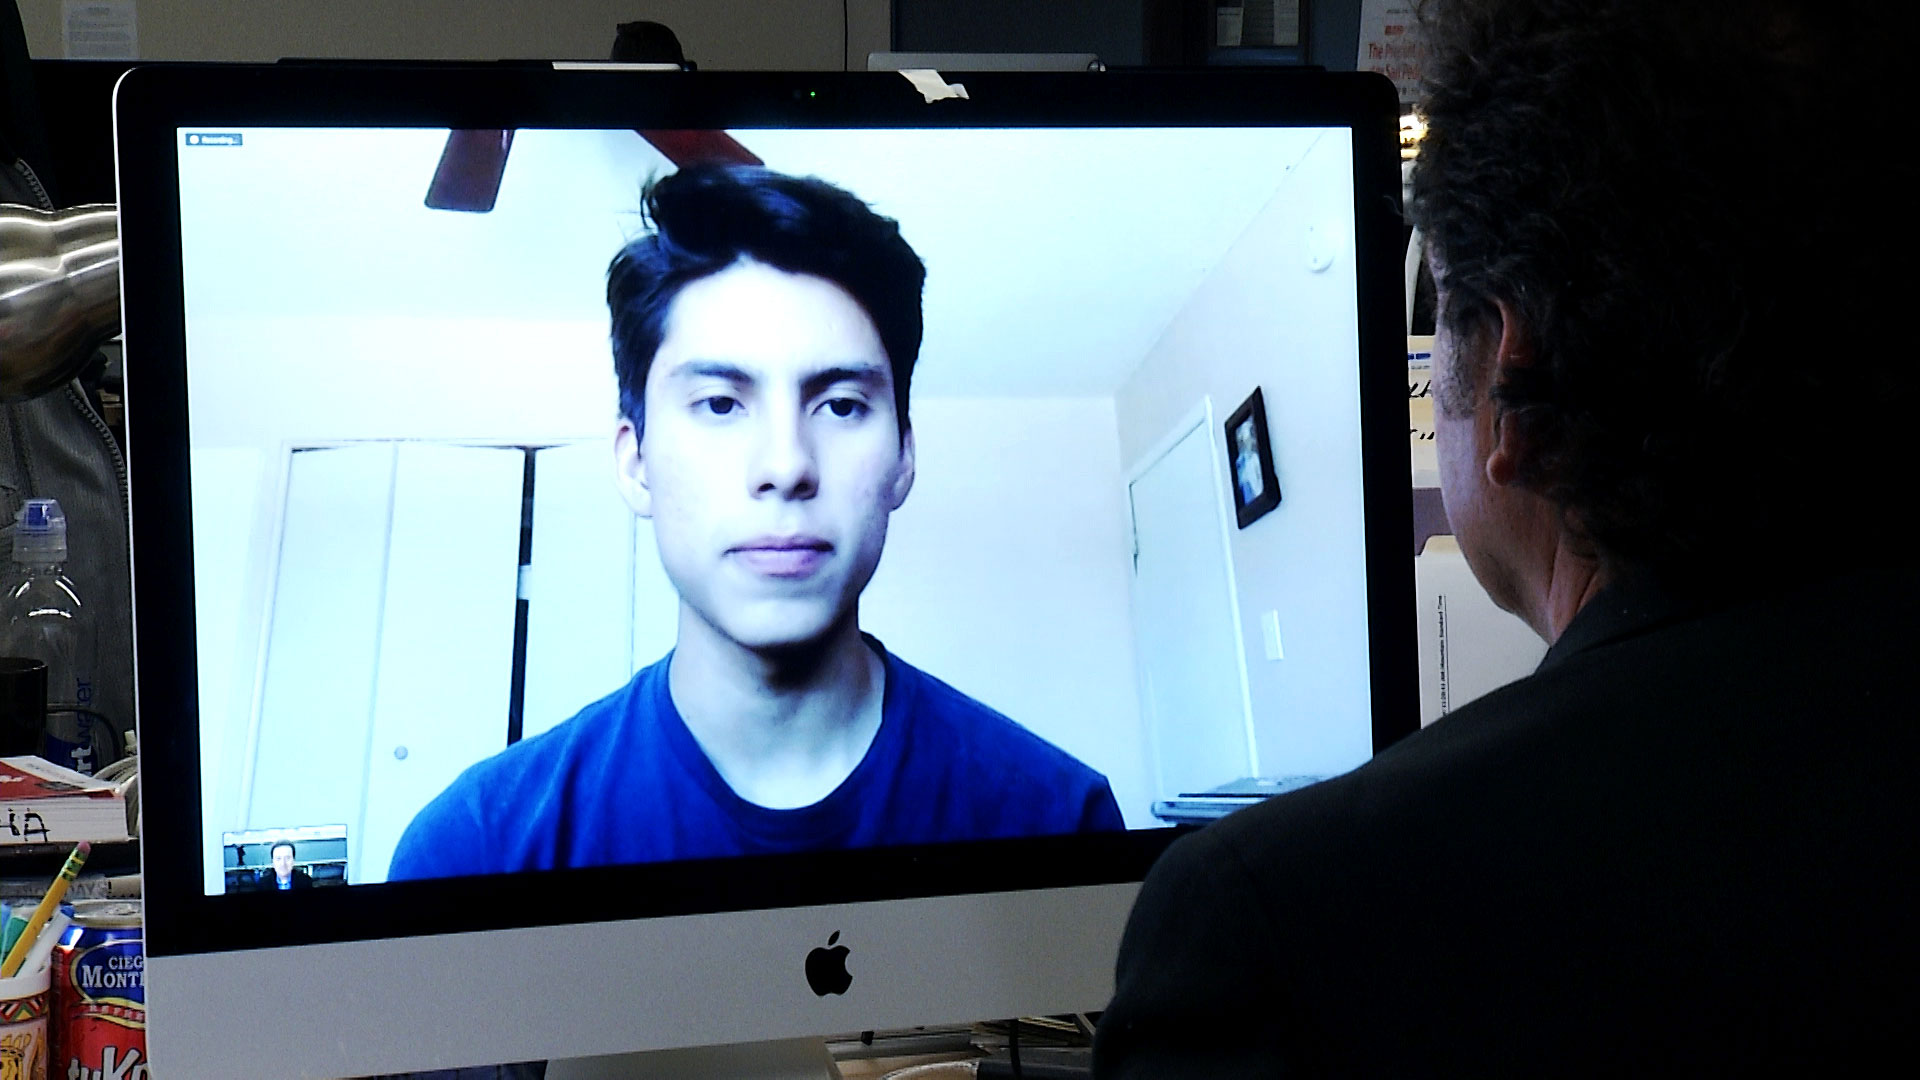 AZPM's Tony Paniagua interviews Darian Benitez Sanchez over Zoom on June 22, 2020. The Phoenix teen hopes to apply for DACA, the Deferred Action for Childhood Arrivals program that protects immigrants brought illegally to the U.S. as children from deportation.